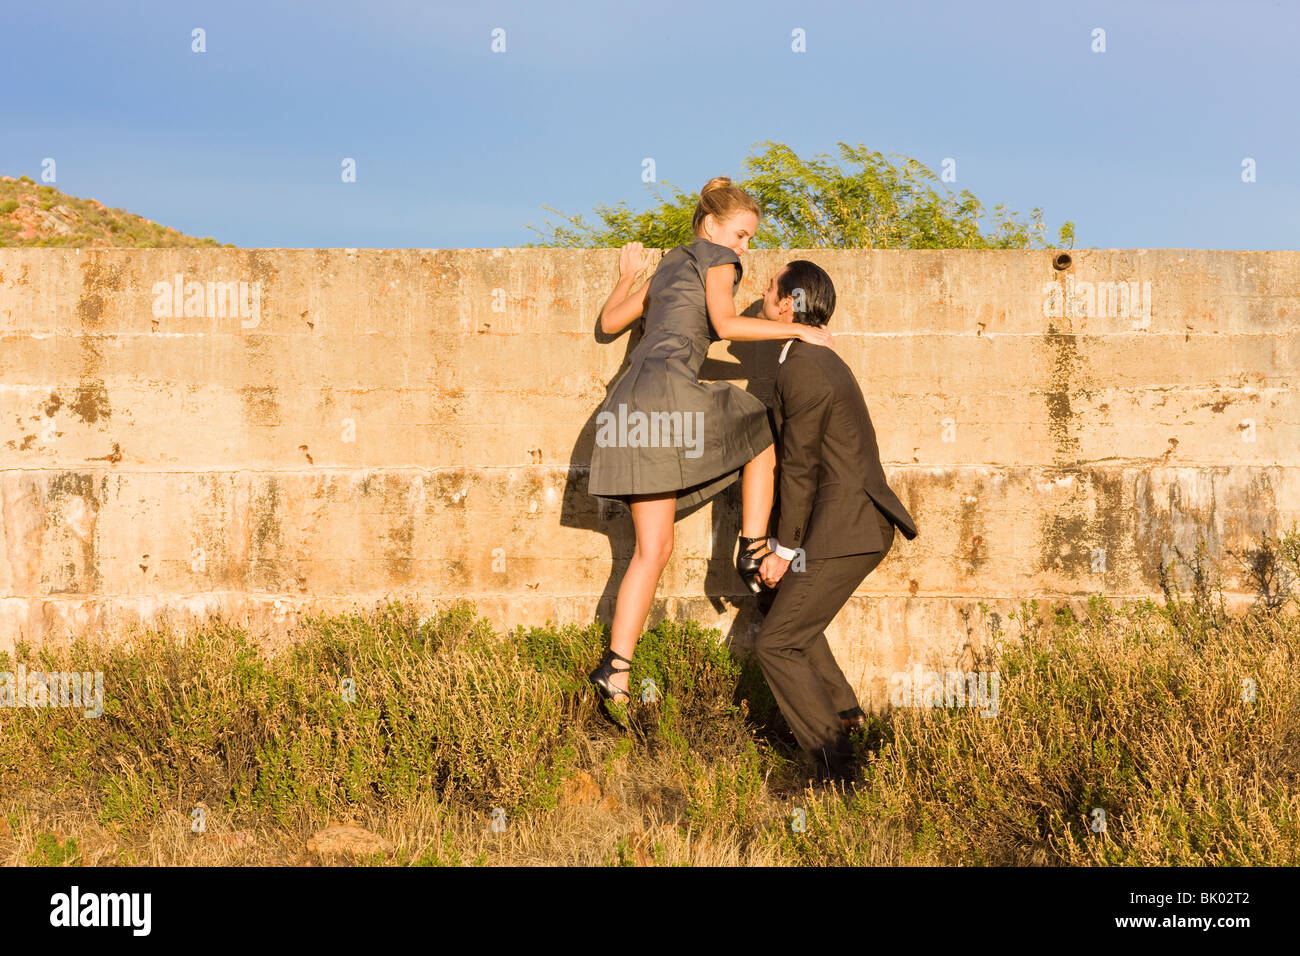 Looking over the wall - Stock Image